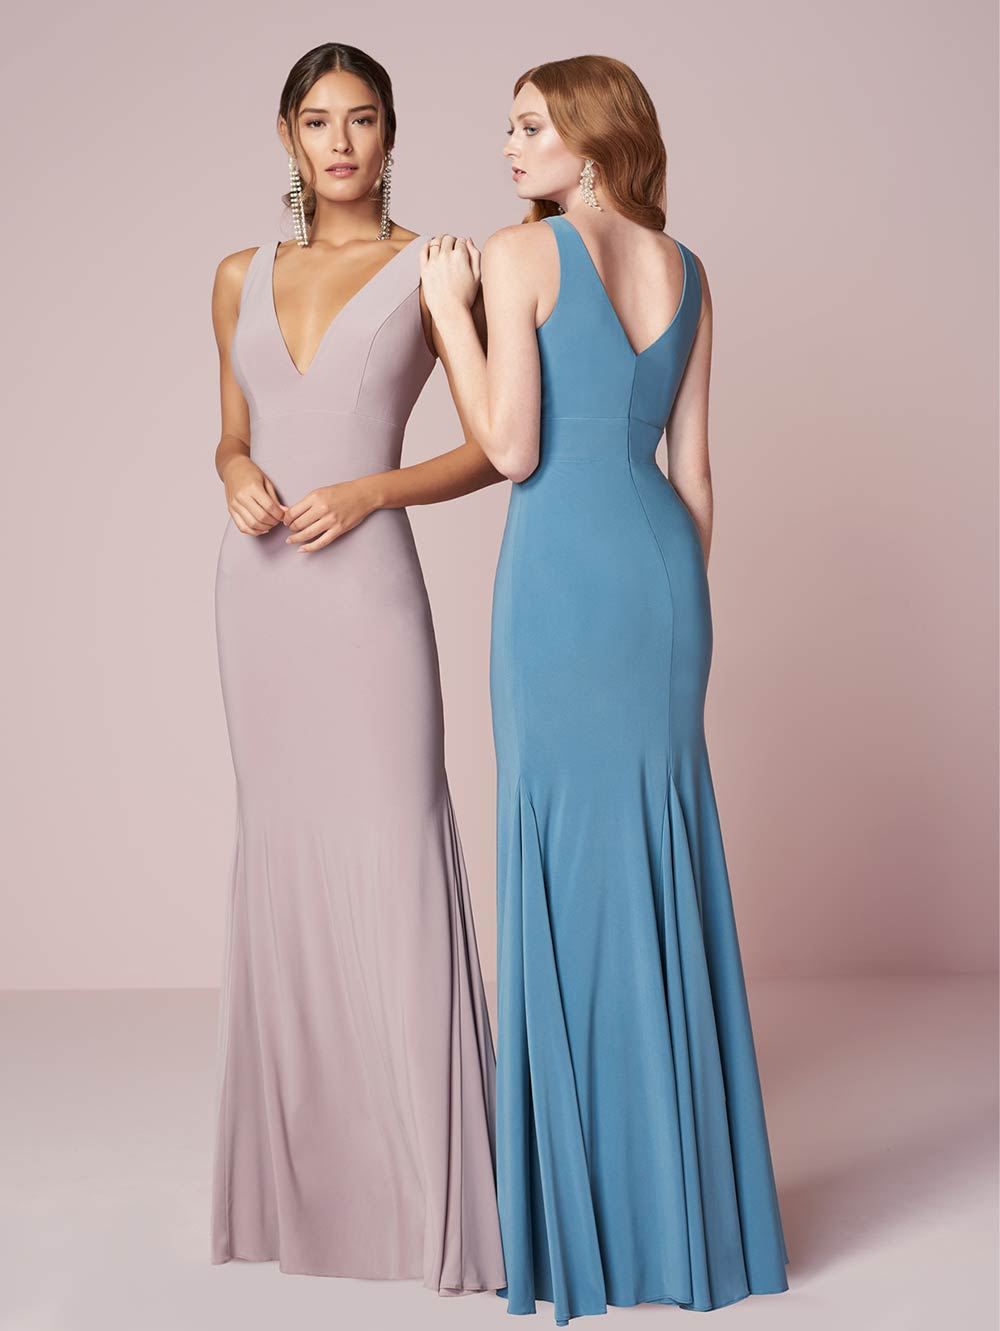 bridesmaid-dresses-jacquelin-bridals-canada-27771